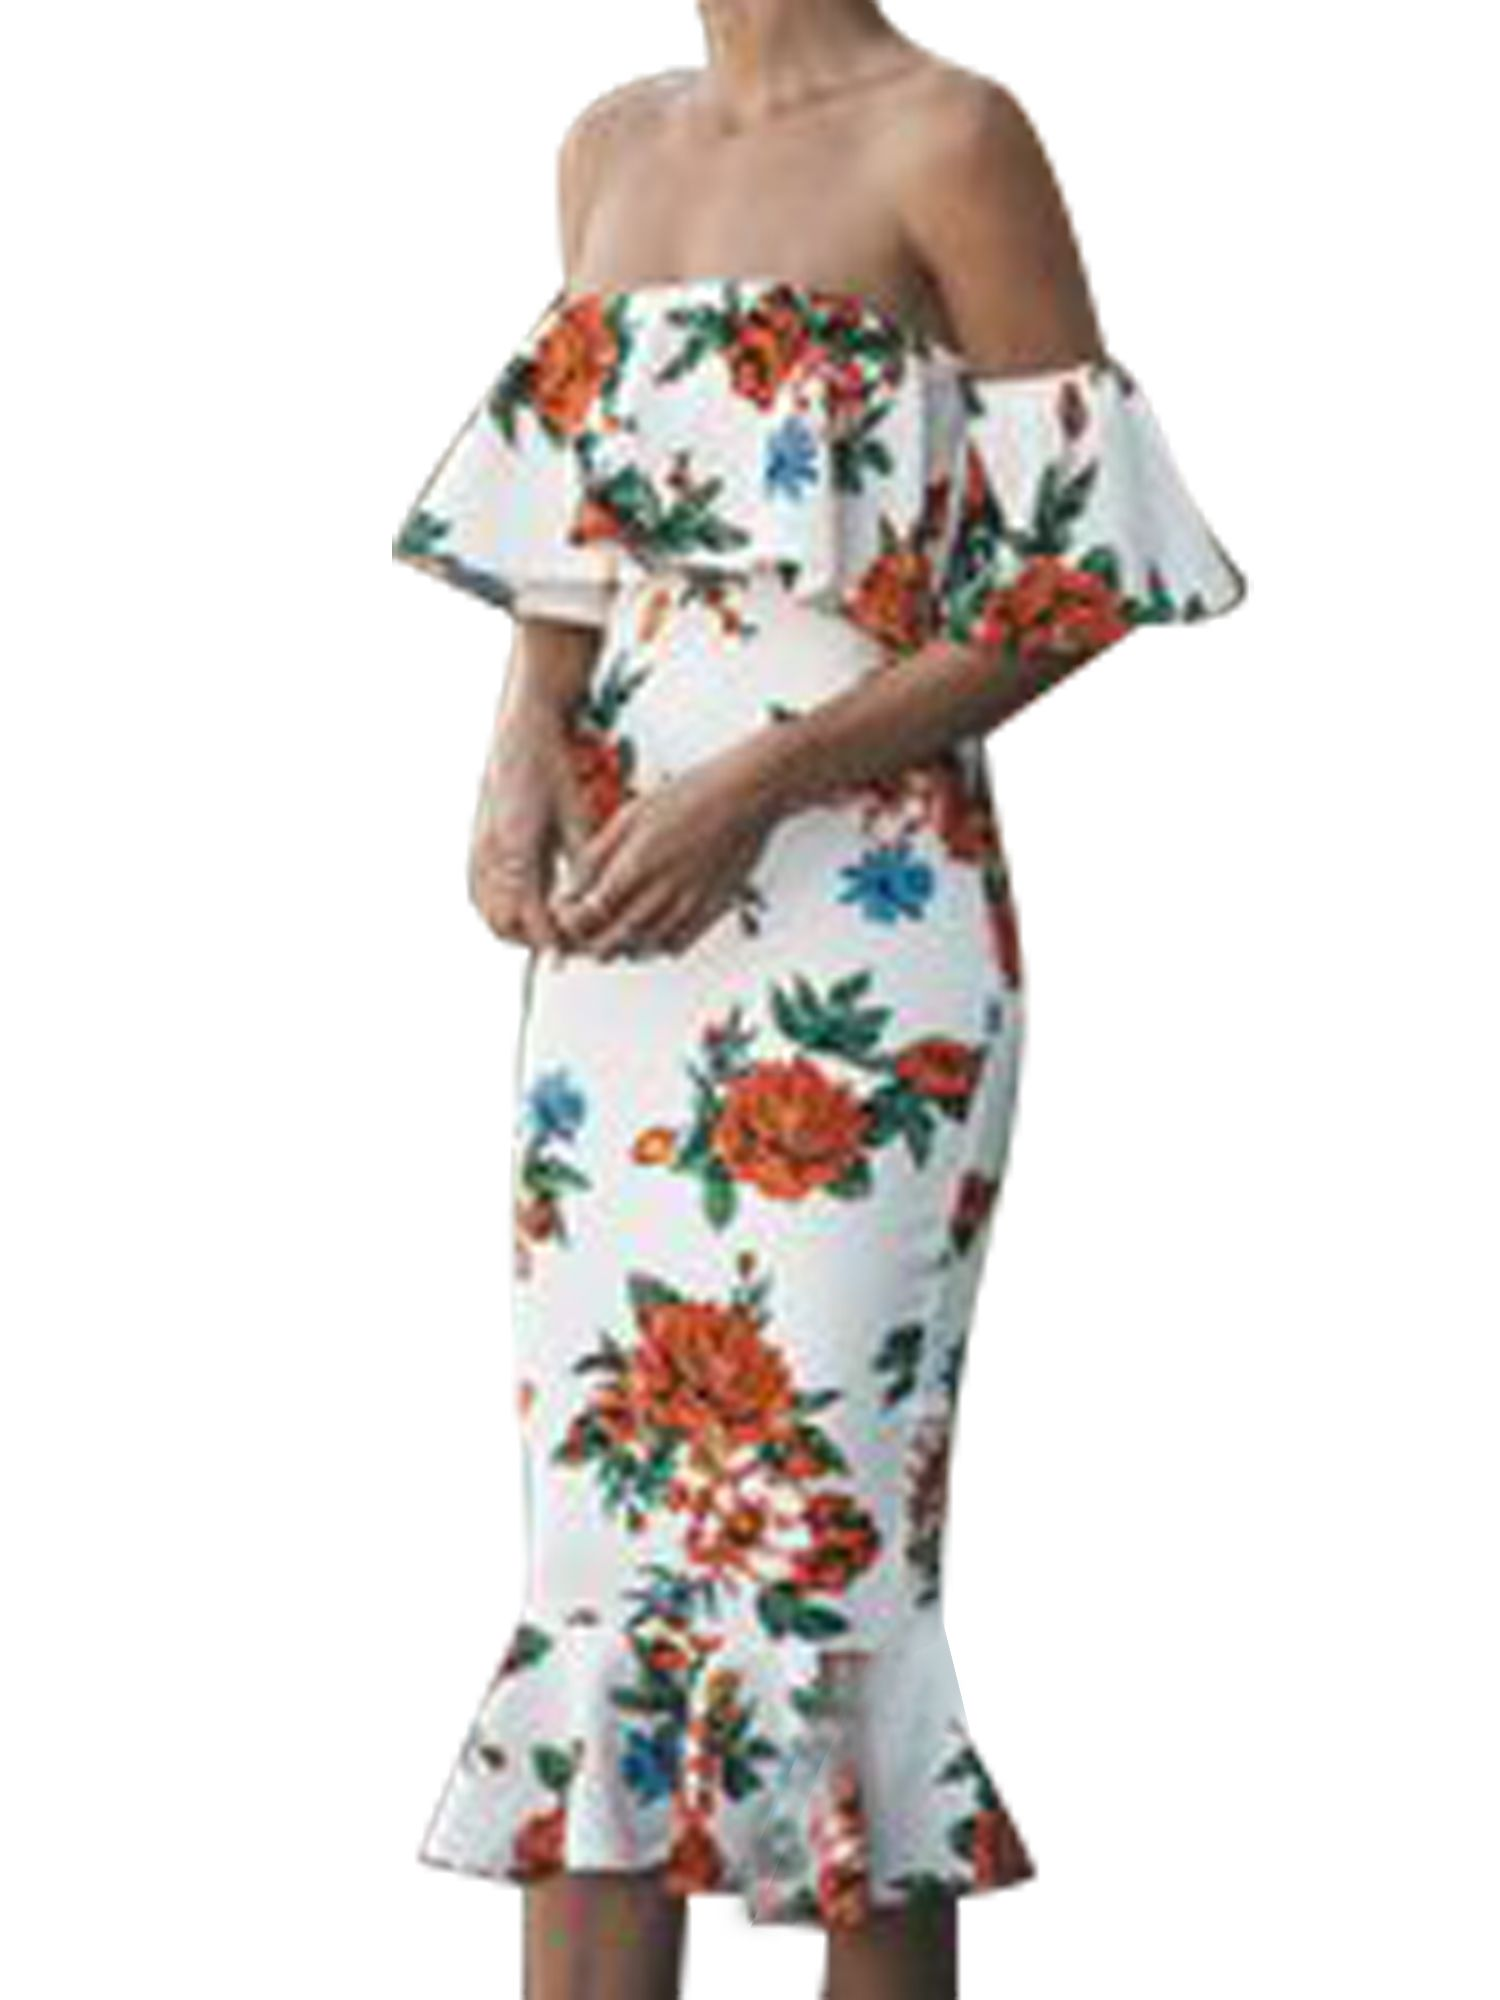 Sexy Dance - Floral Bodycon Dresses Women Ruffles Short Sleeve Long Midi Formal Cocktail Evening Party Off Shoulder Backless Dress - Walmart.com #shortbacklessdress